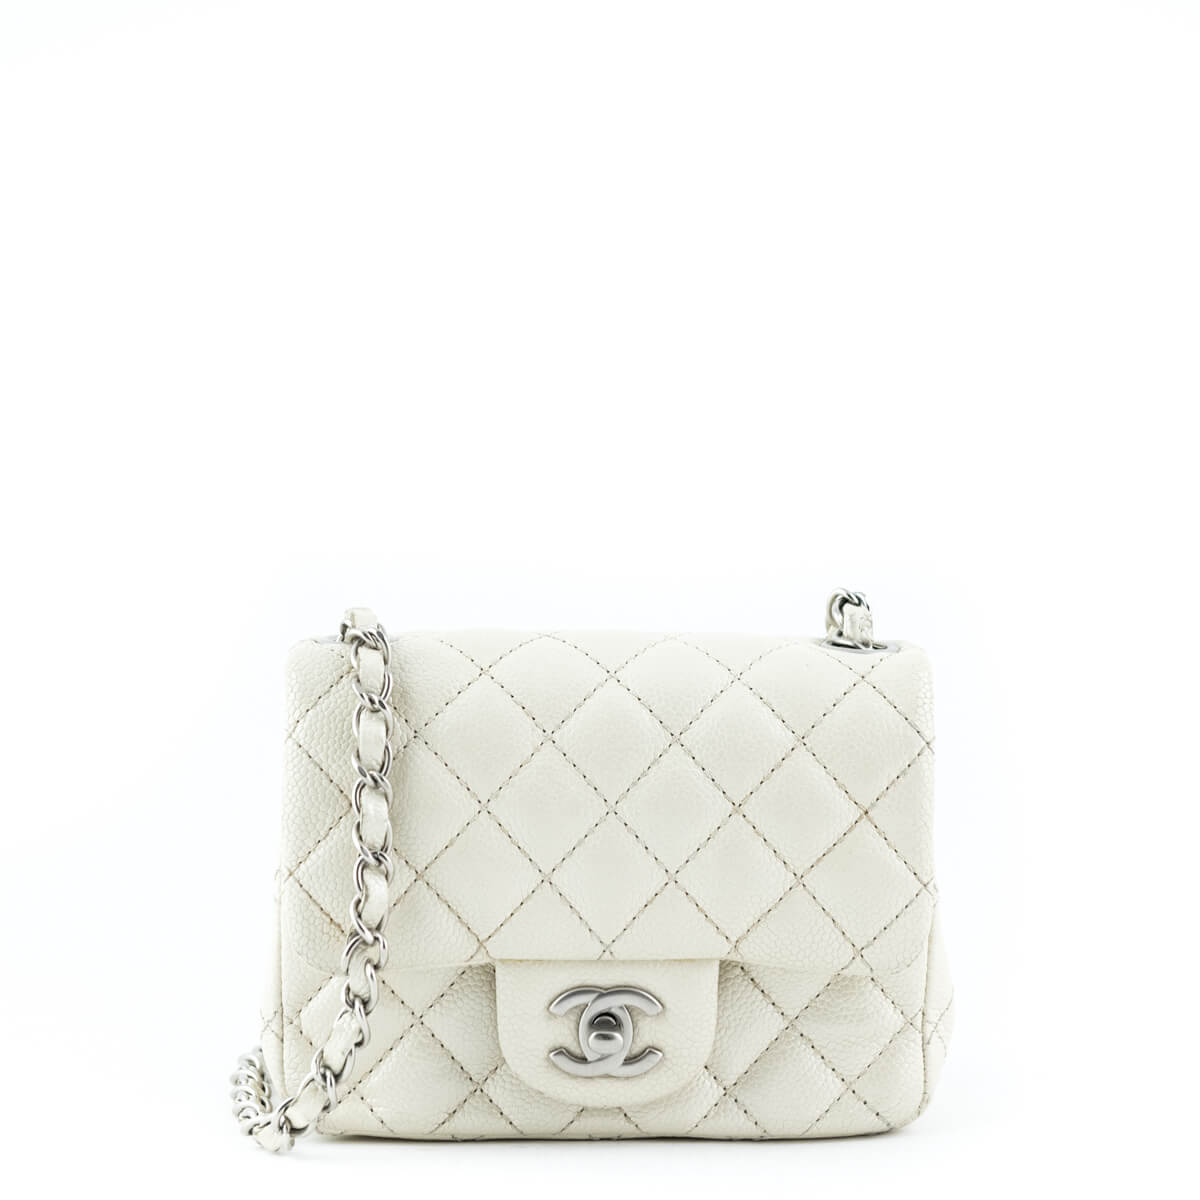 7a0a96c1a500 Chanel Metallic Ivory Caviar Mini Square Flap Bag - LOVE that BAG - Preowned  Authentic Designer ...